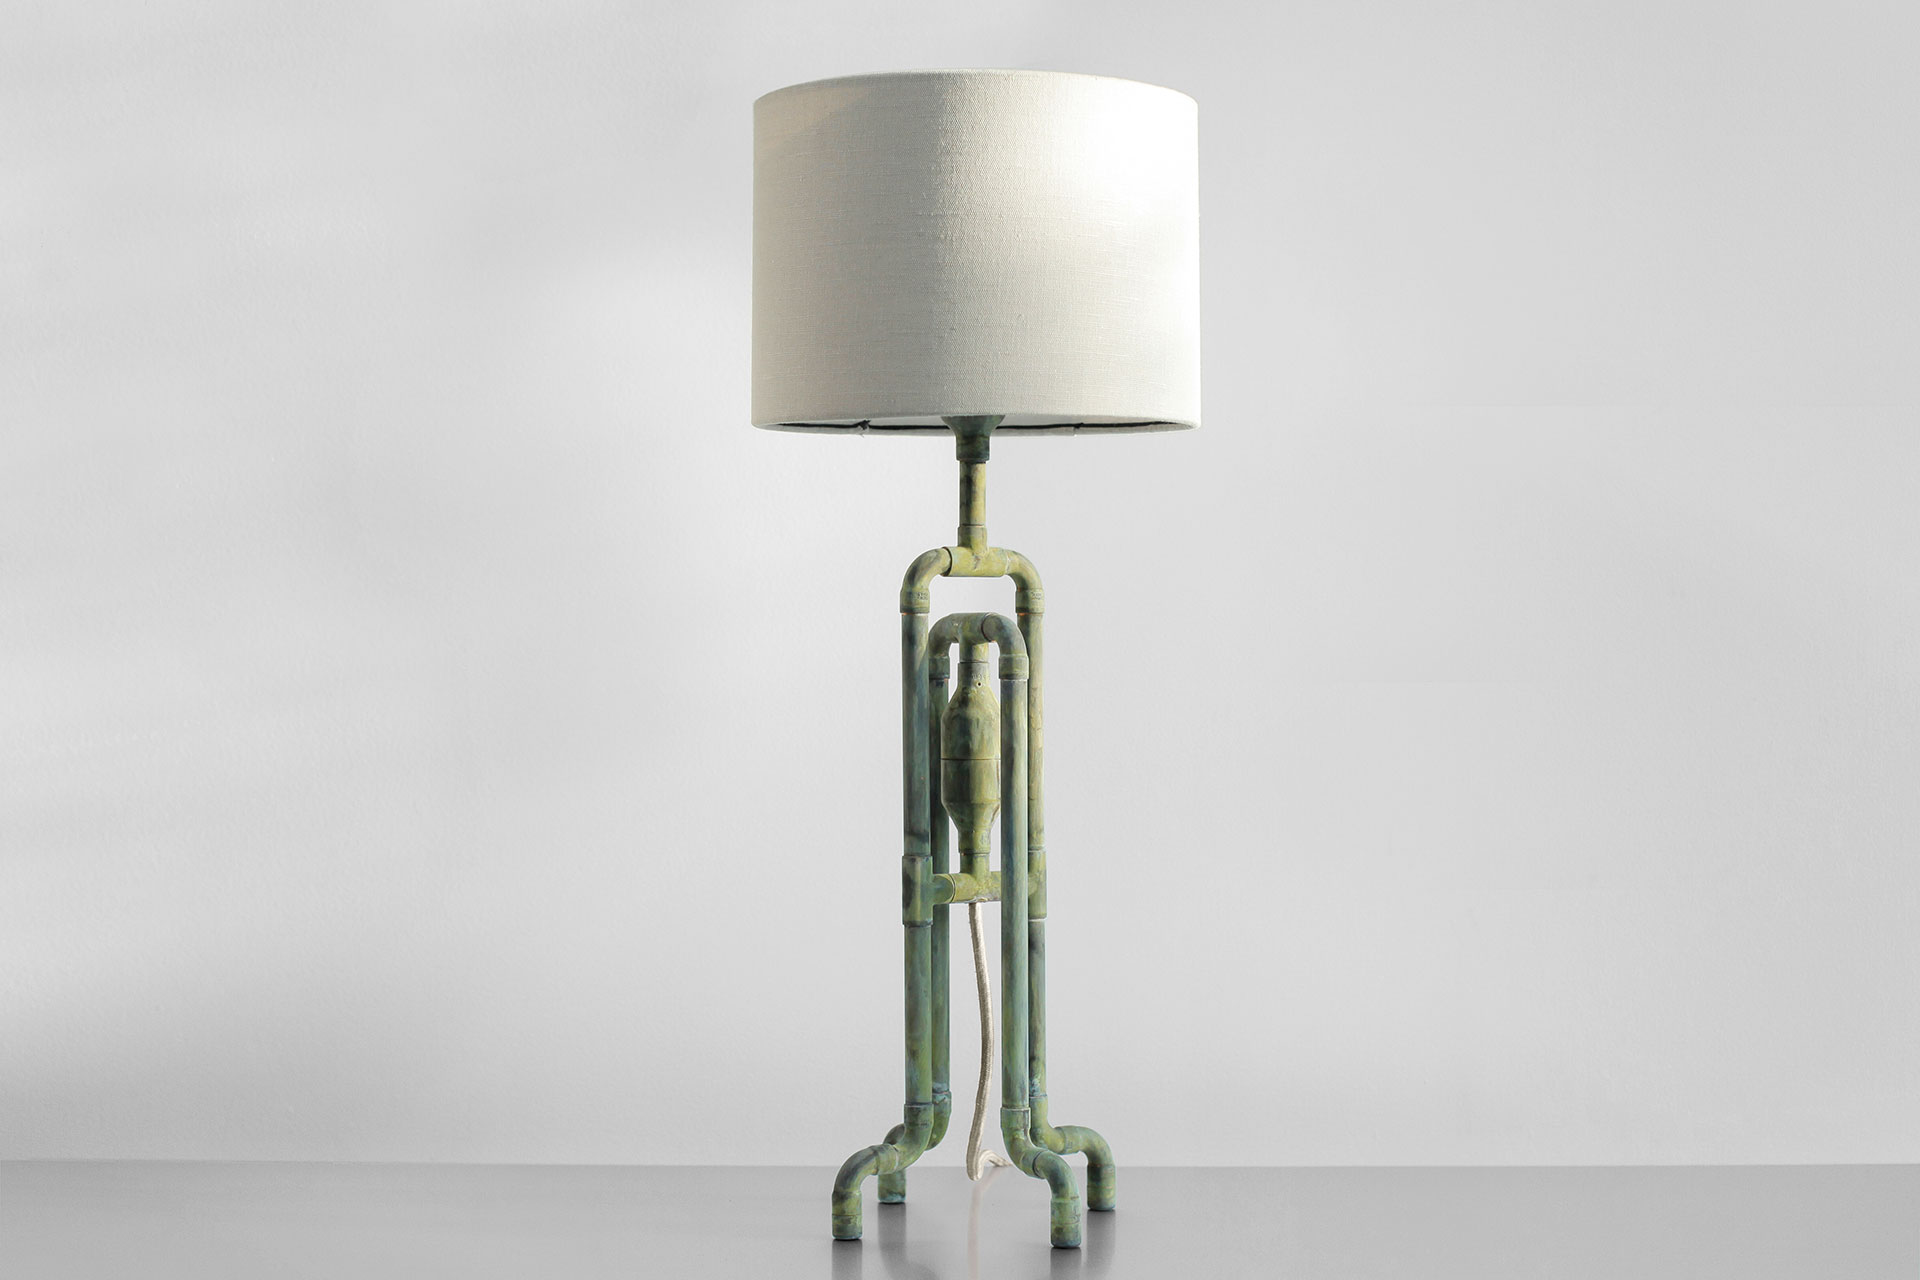 Trendy green patina table lamp with natural linen shade in modern masculine apartment